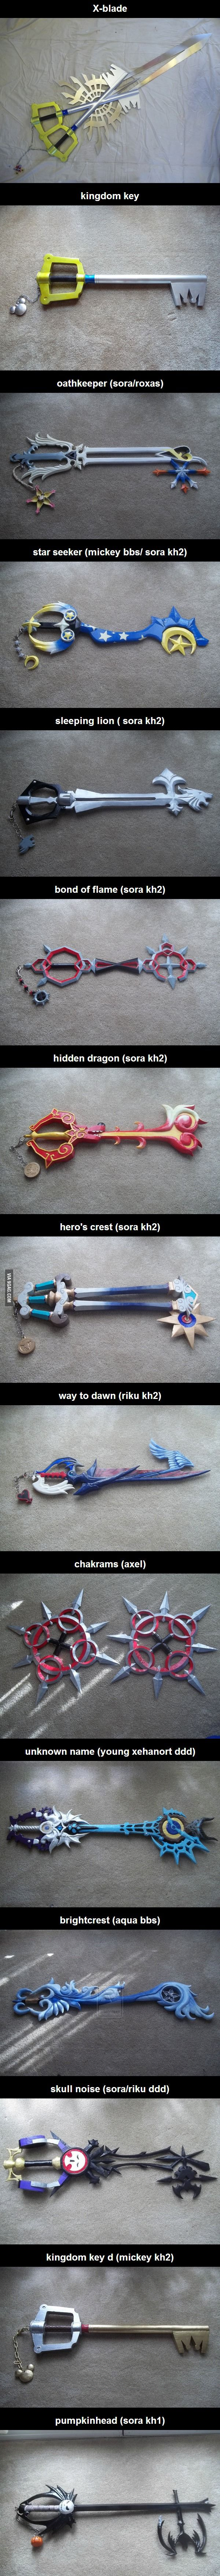 Kingdom Hearts weapons